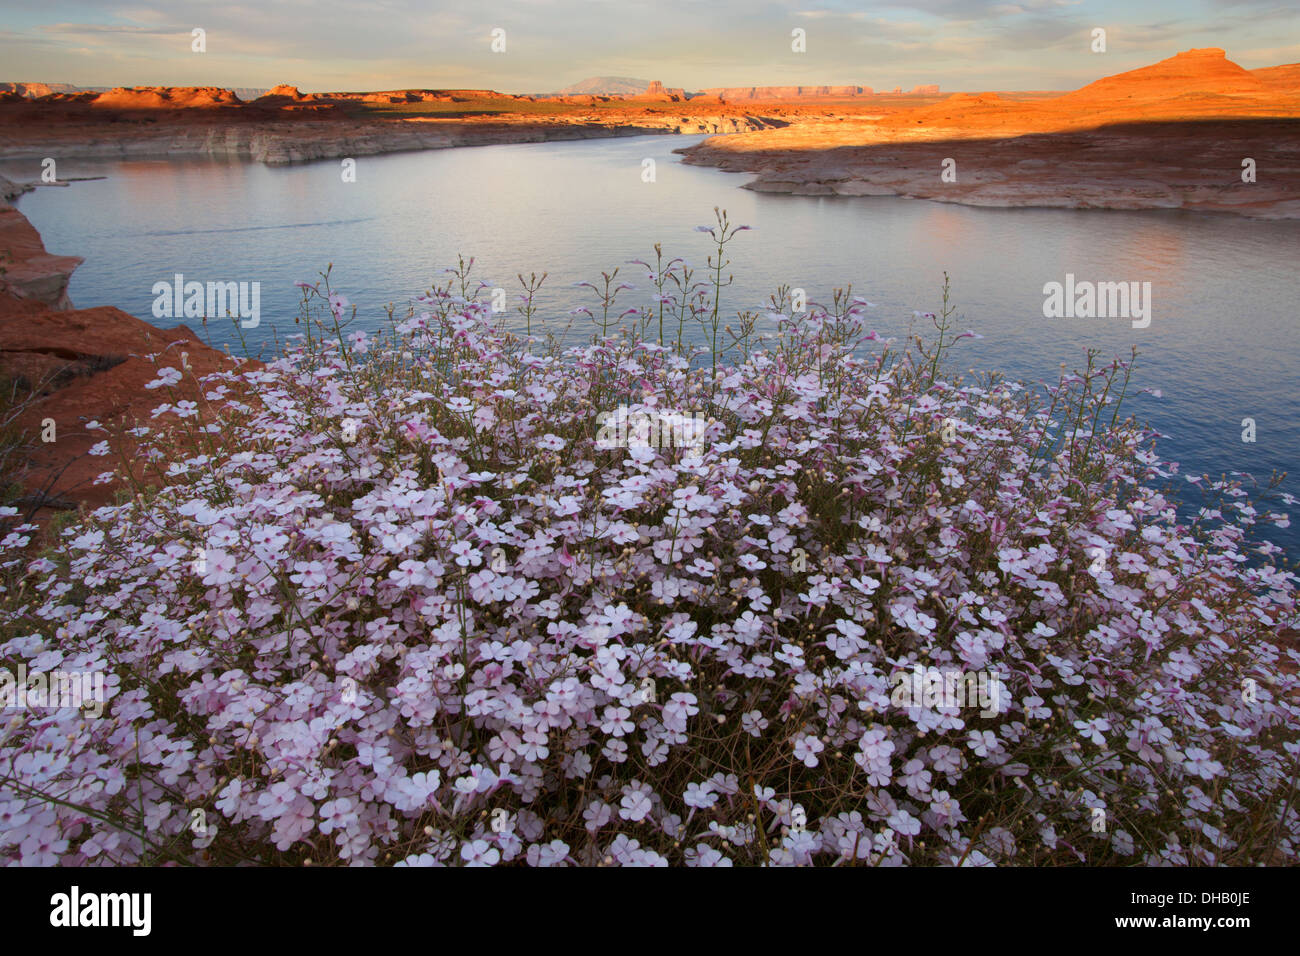 Lake Powell, Glen Canyon National Recreation Area, Arizona. Immagini Stock